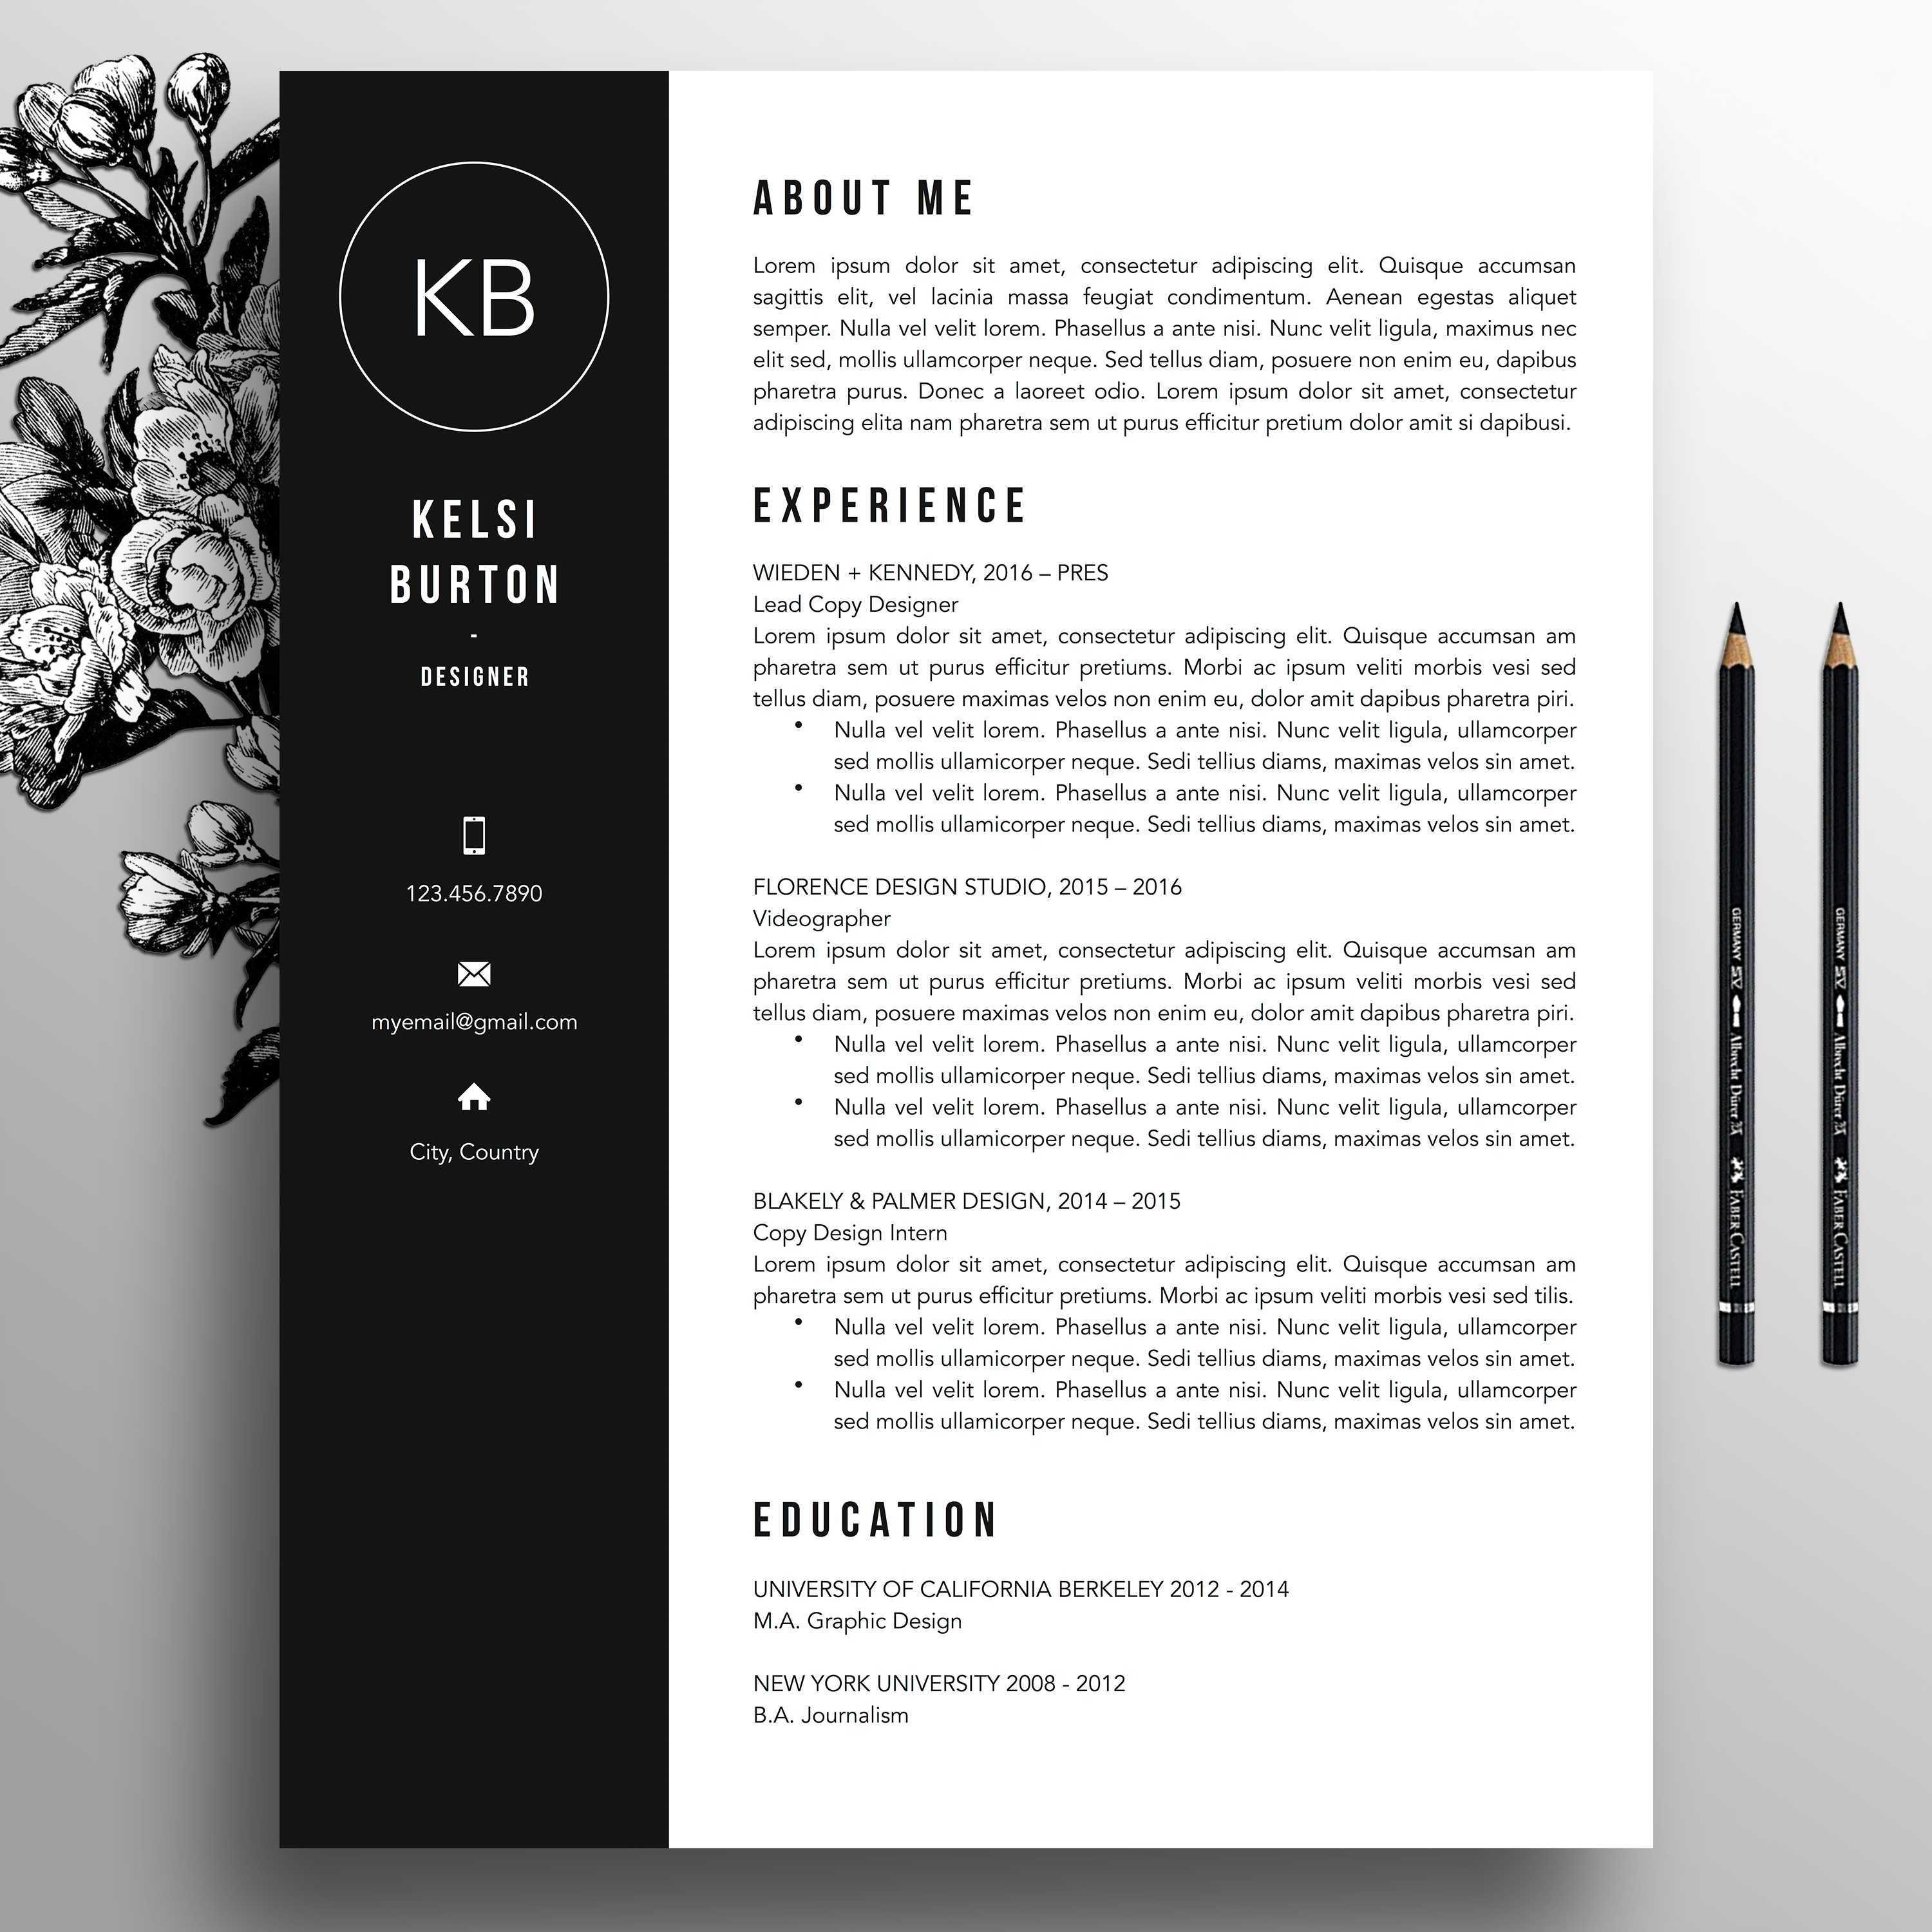 Pin on Professional Resume/CV Templates